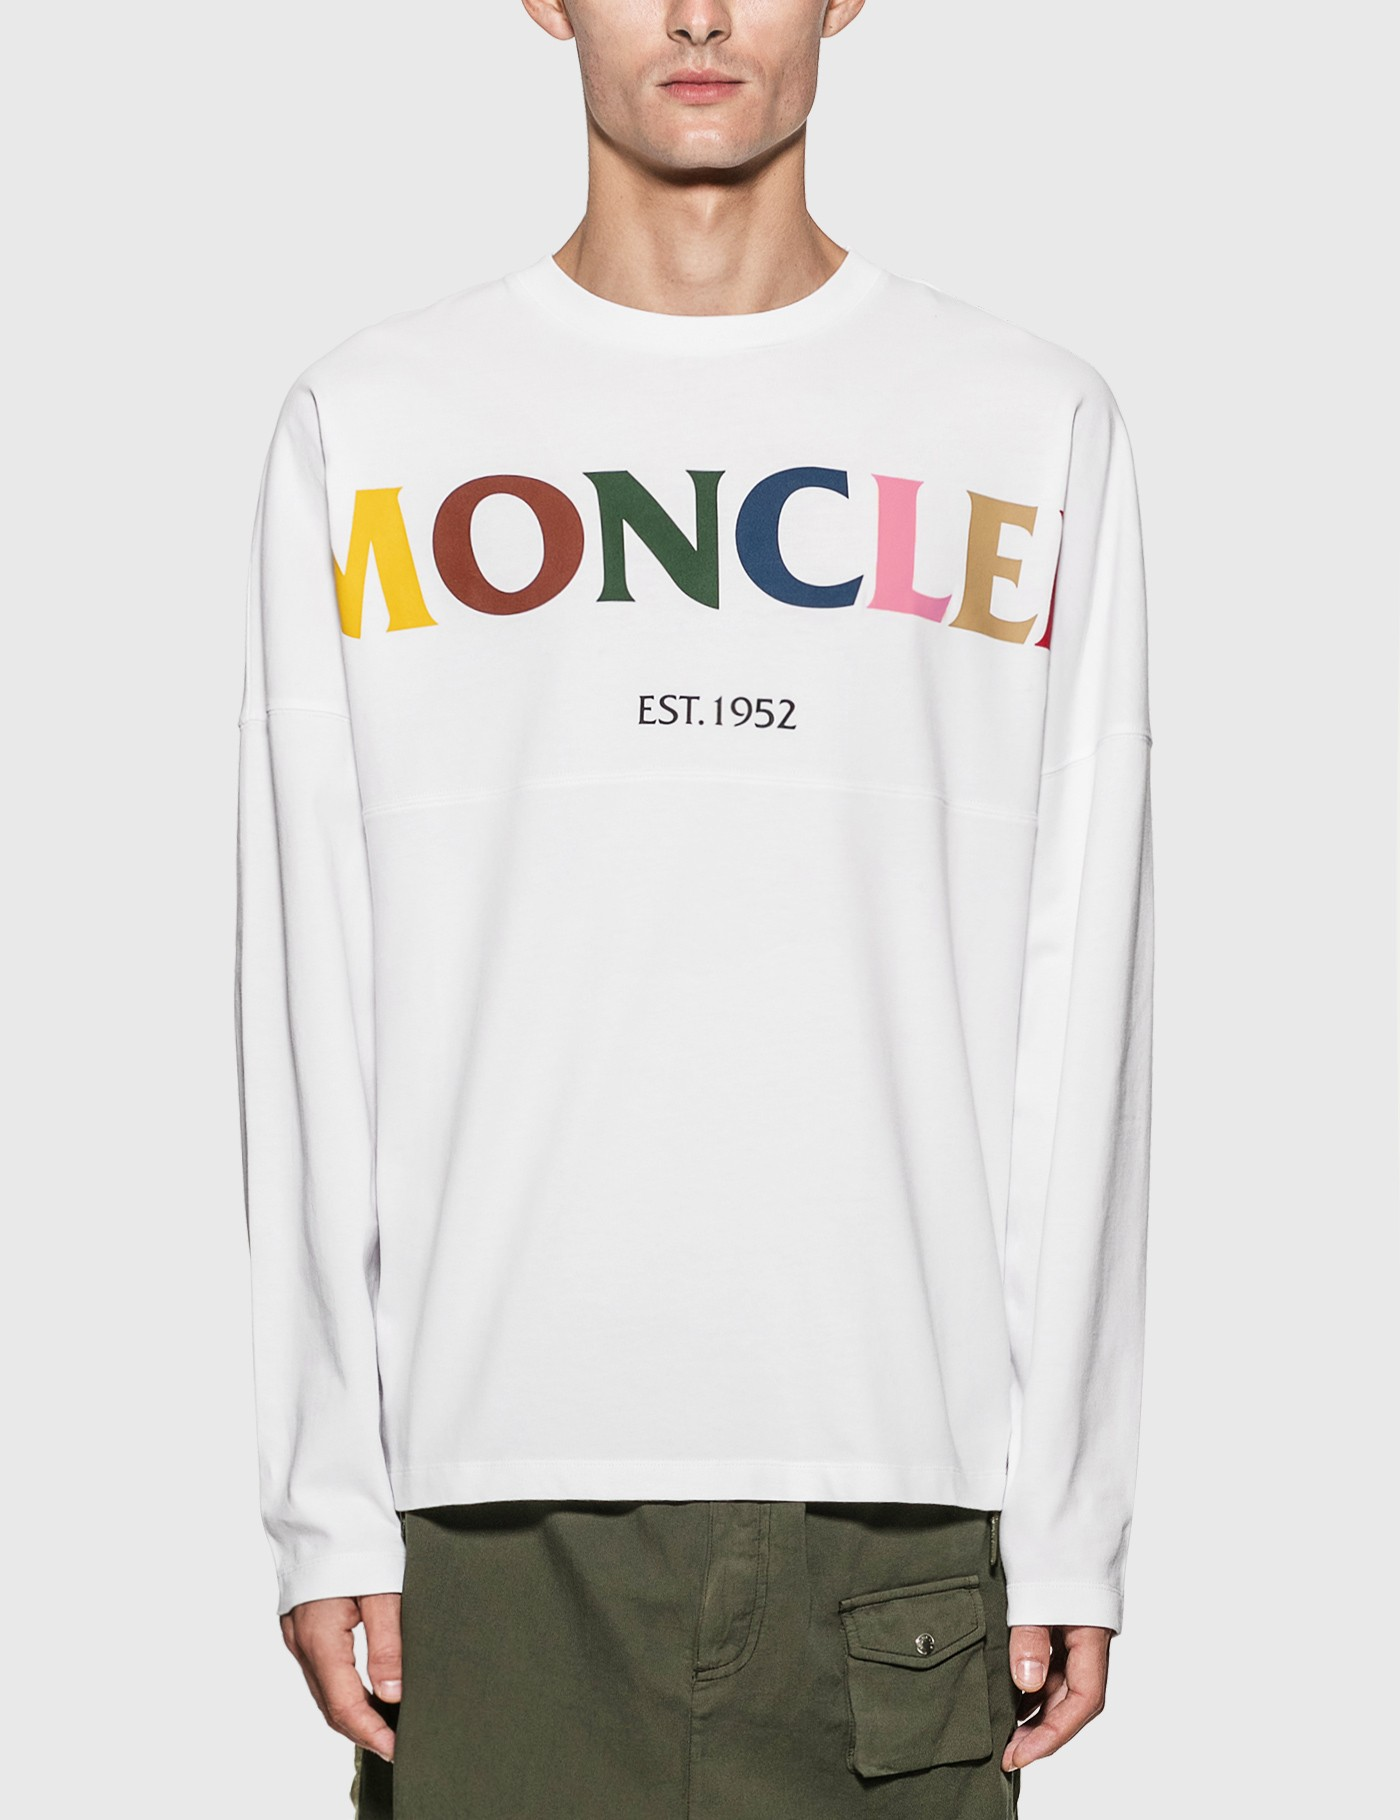 MONCLER GENIUS 1952 X UNDEFEATED COLORFUL LOGO LONG SLEEVE T-SHIRT